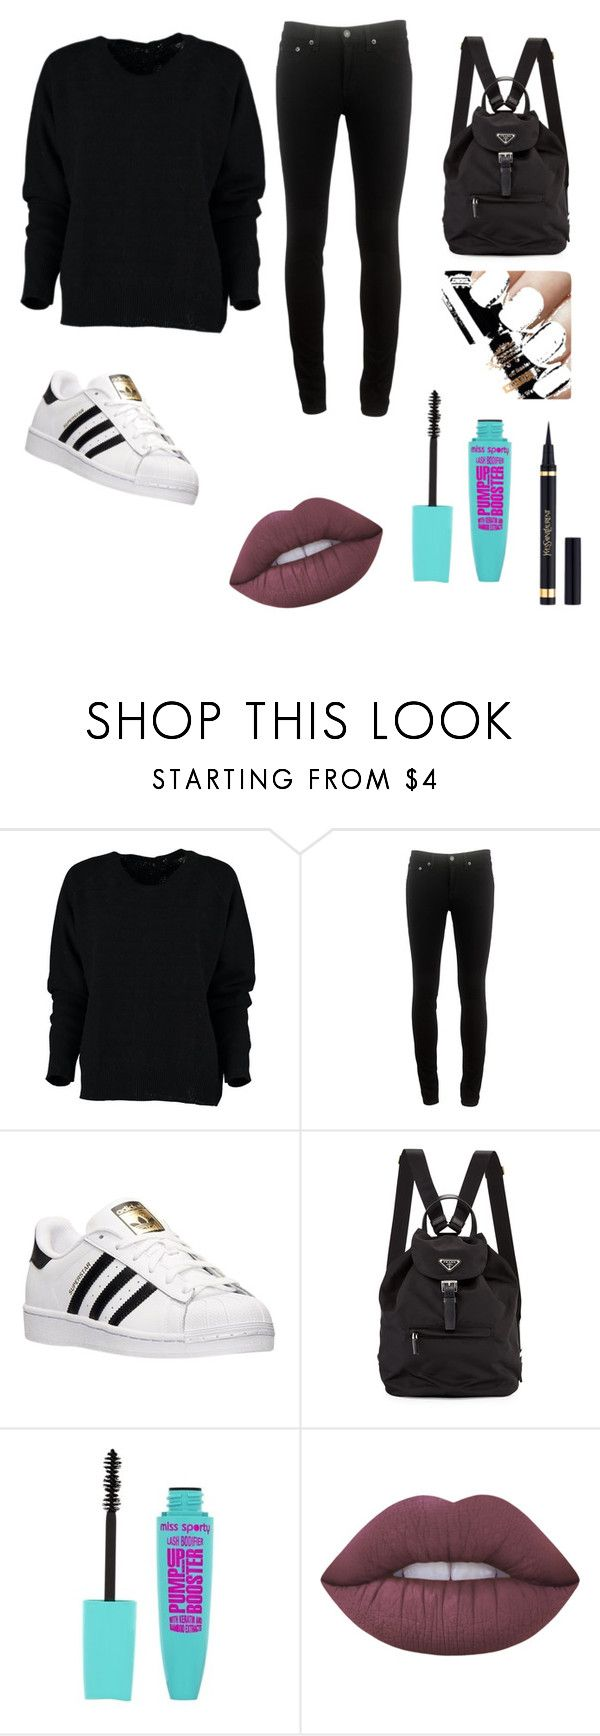 """""""casual all black"""" by maria-josefa ❤ liked on Polyvore featuring rag & bone, adidas, Prada, Lime Crime and Yves Saint Laurent"""